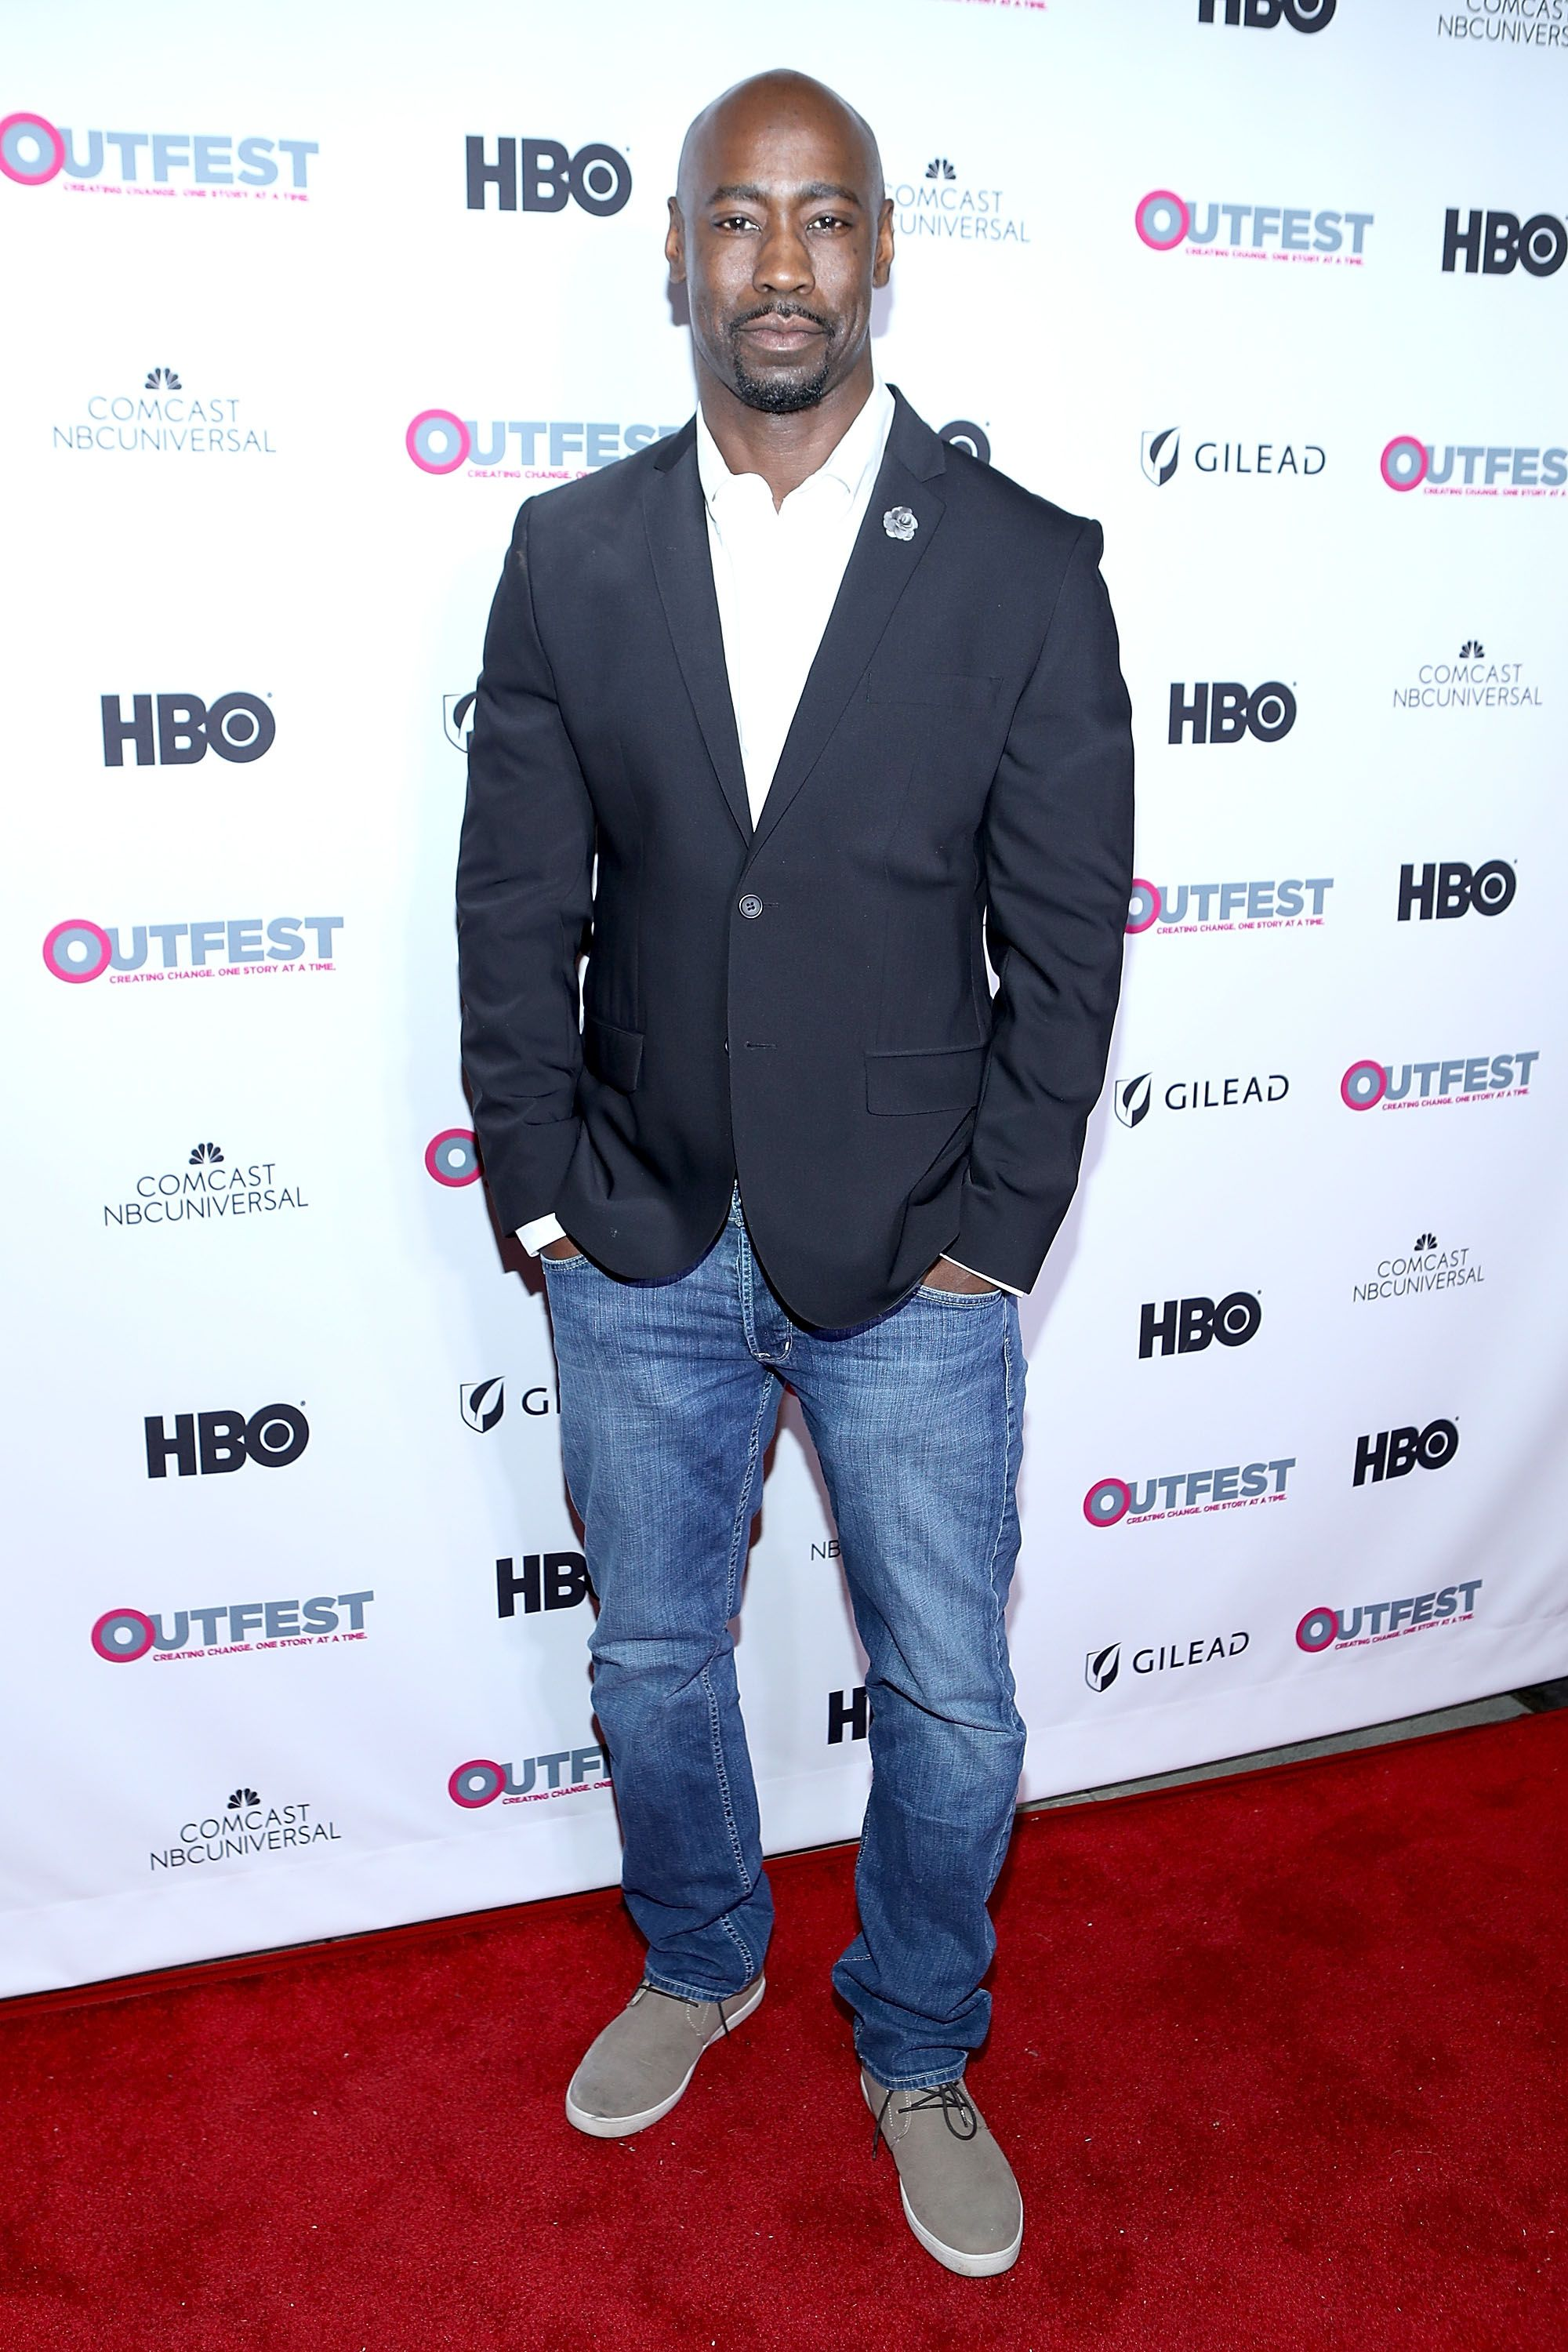 D.B Woodside/Photo:Getty Images